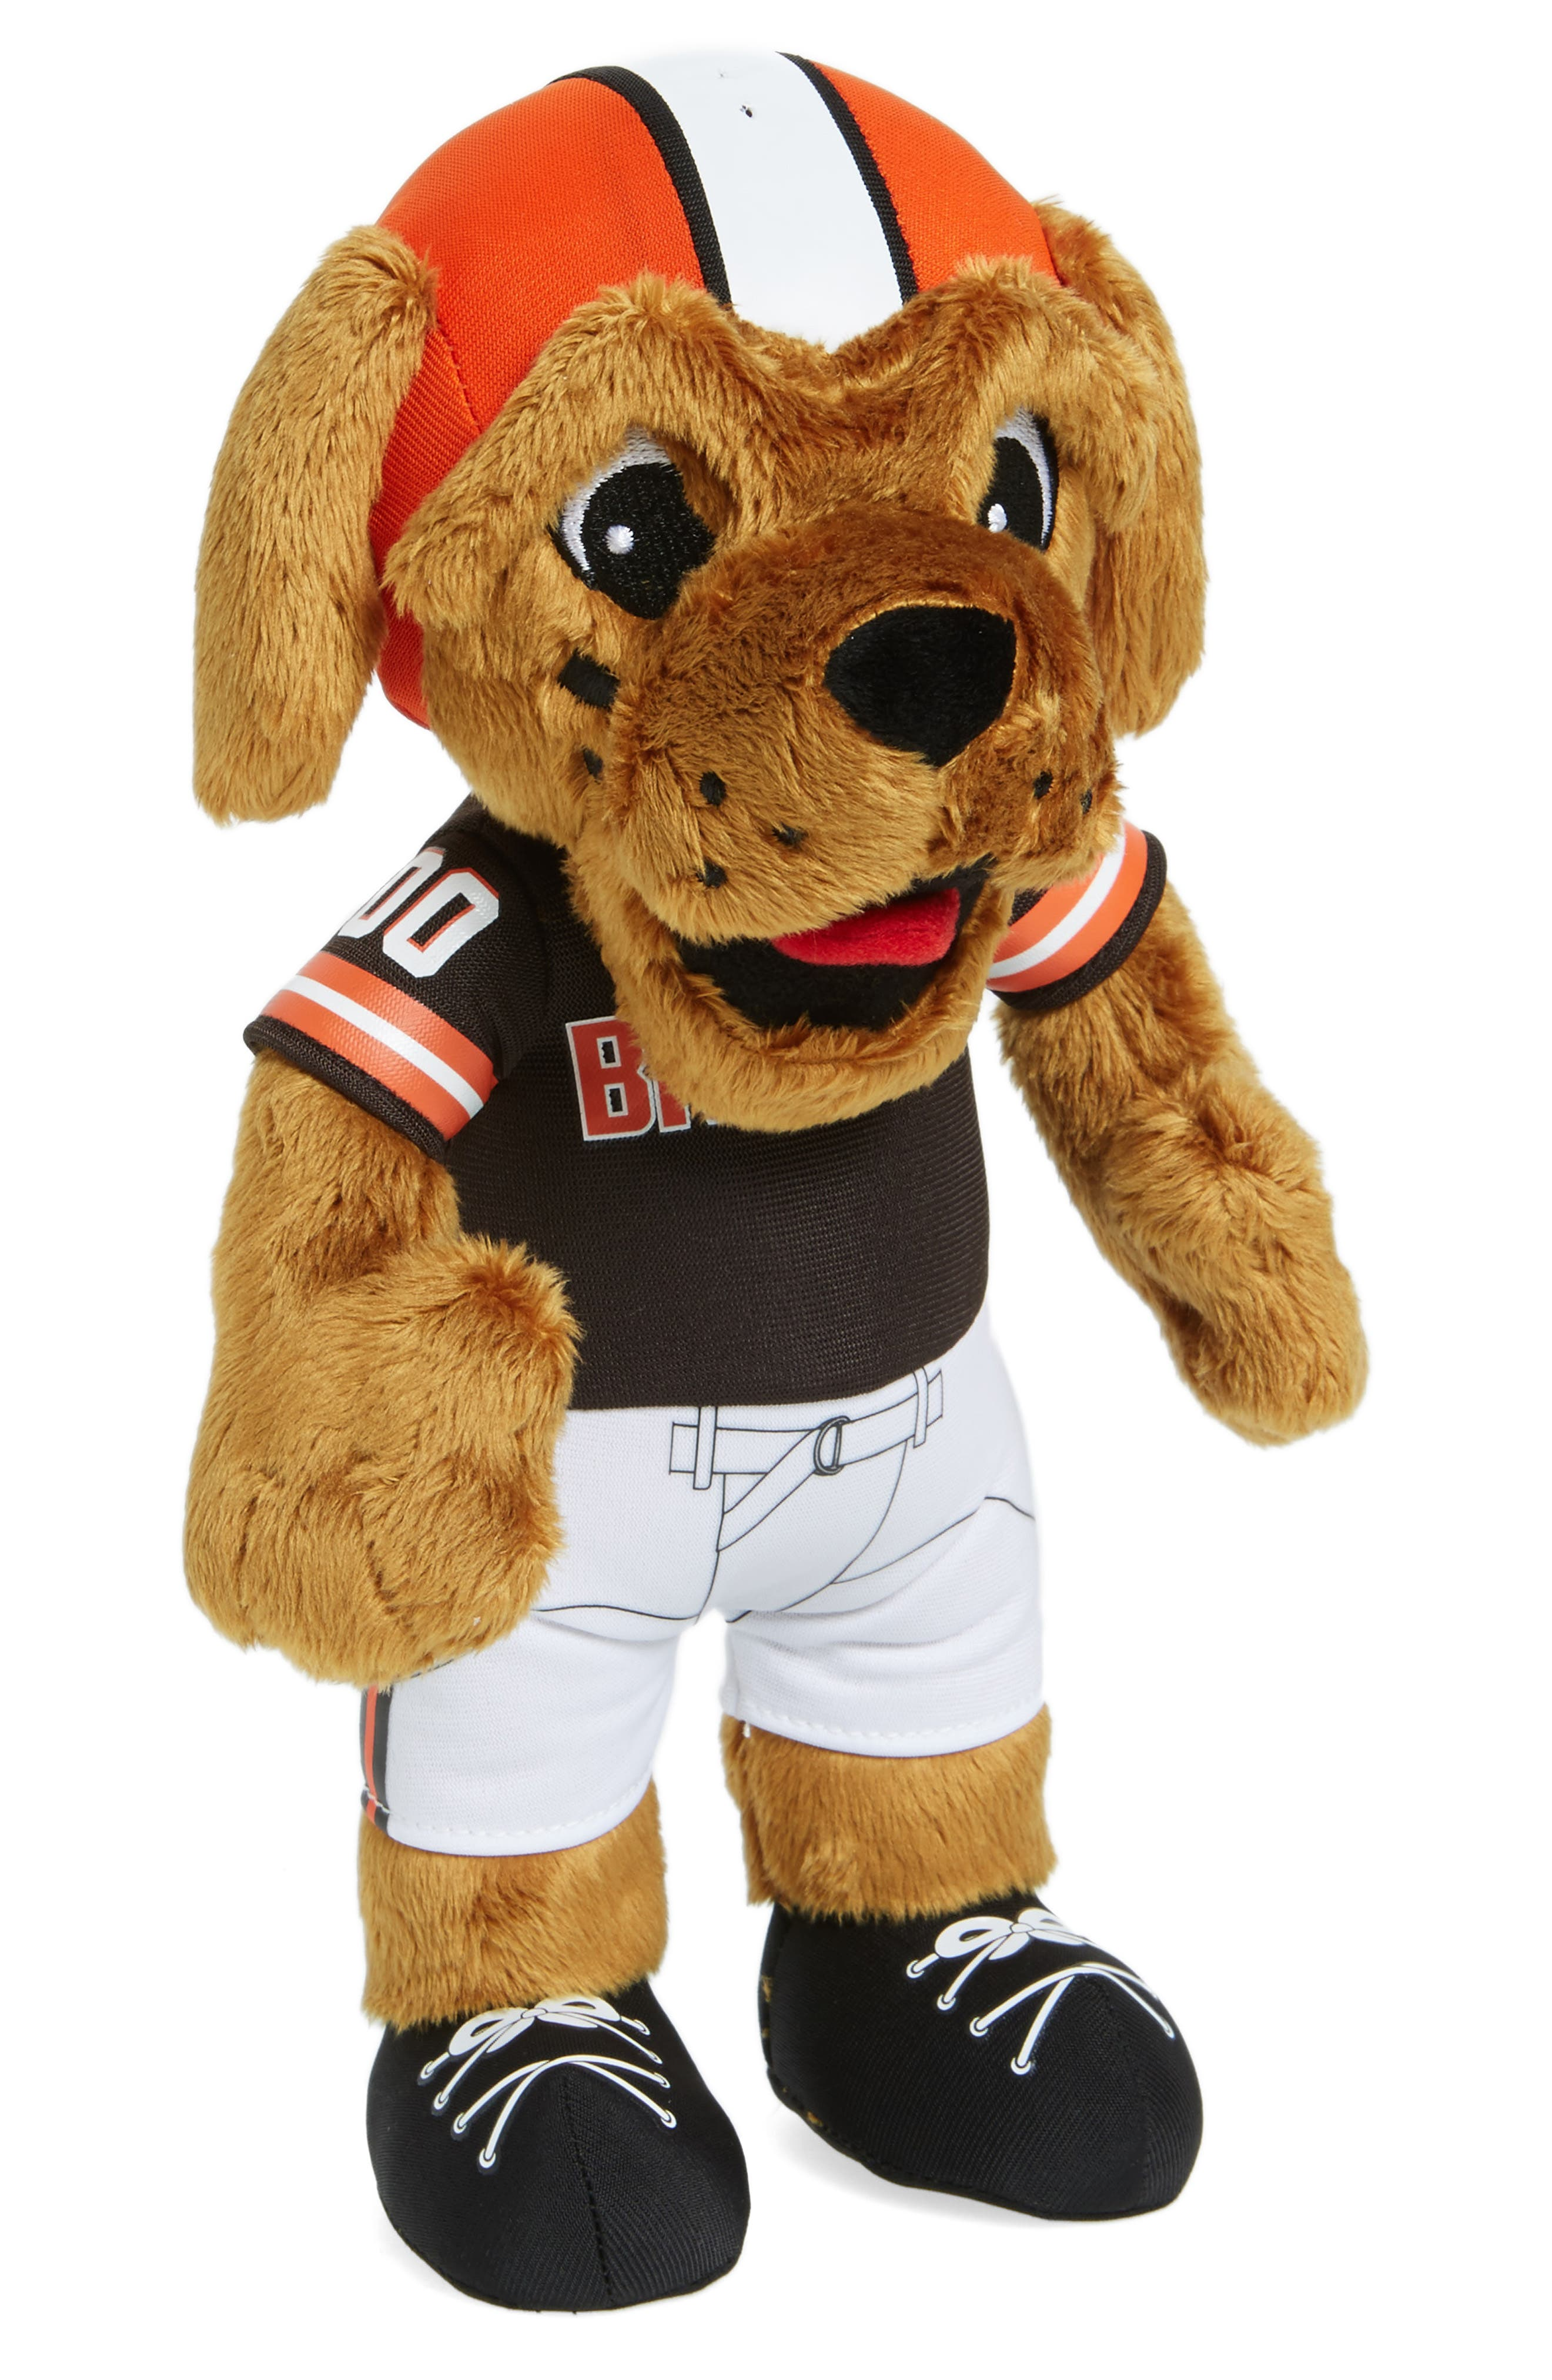 Cleveland Browns - Chomps Plush Toy,                             Main thumbnail 1, color,                             209